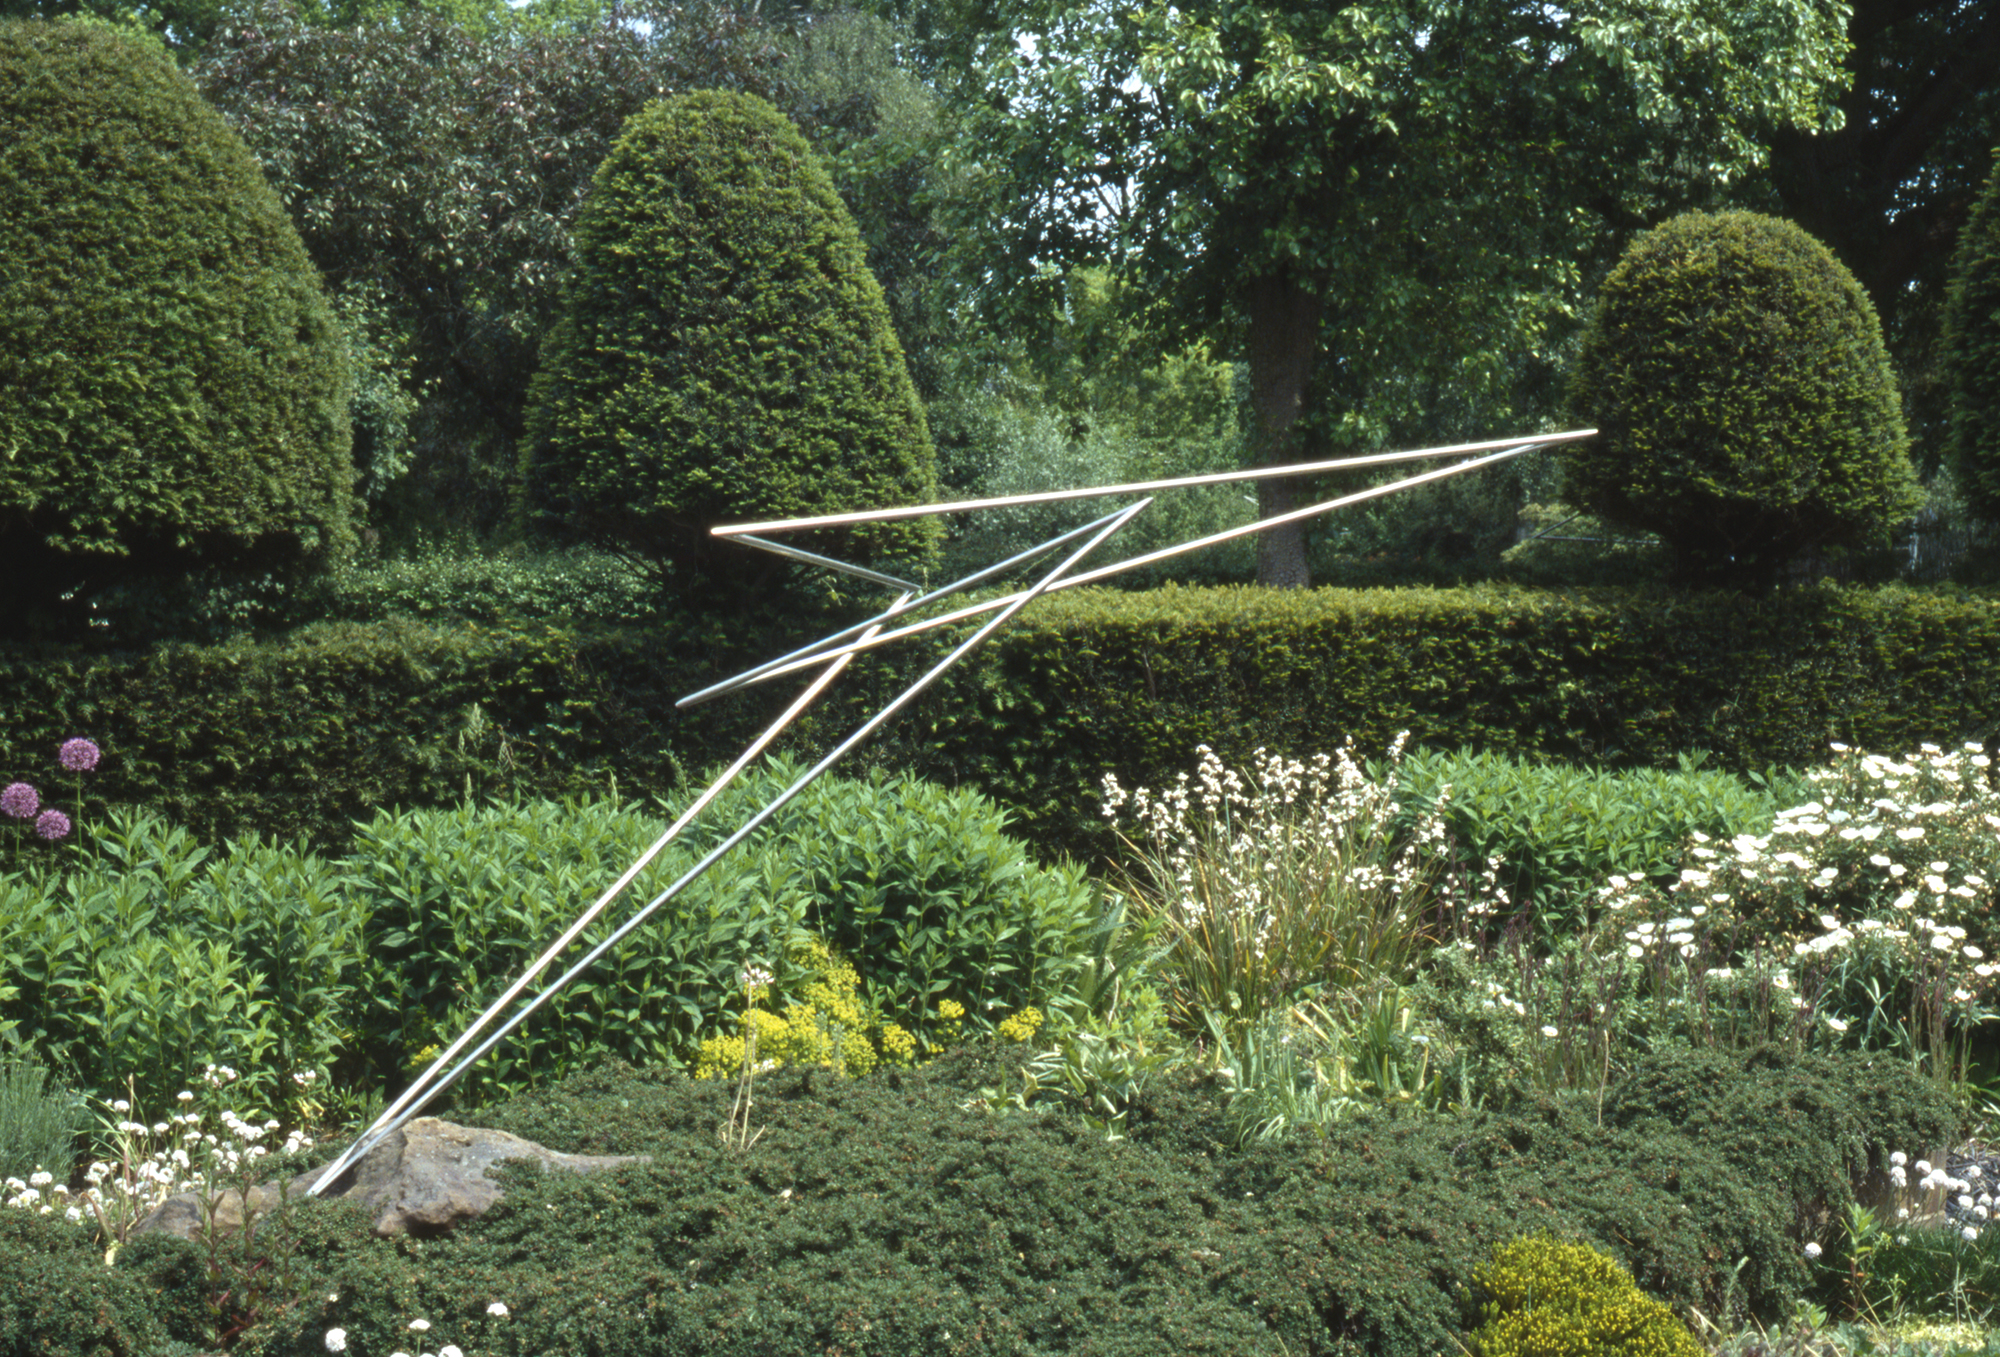 Flying - stainless steel and sarsen stone